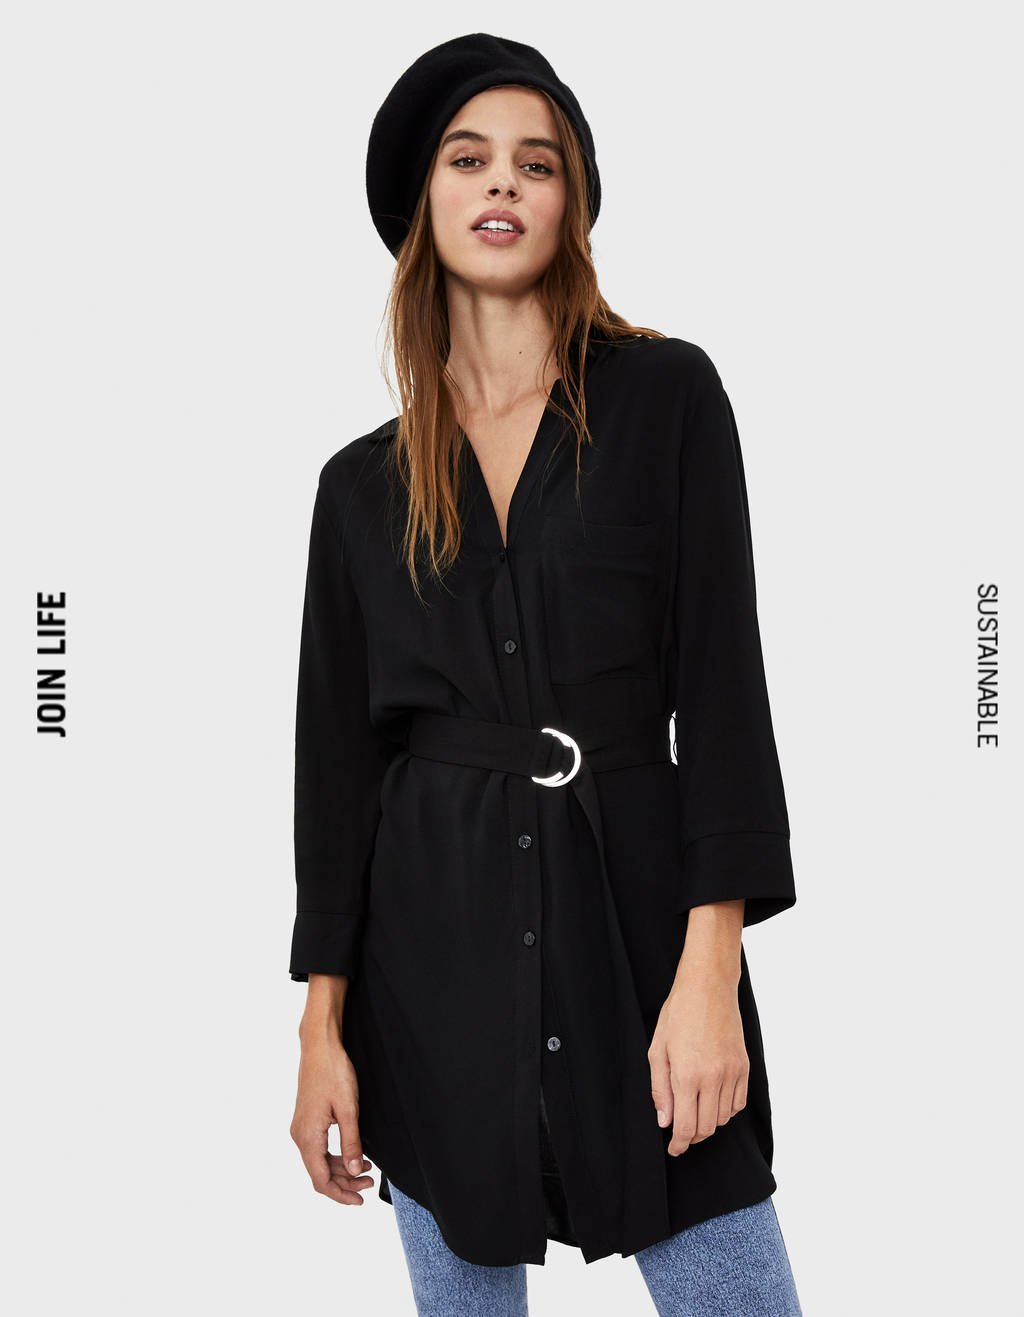 Long shirt with belt